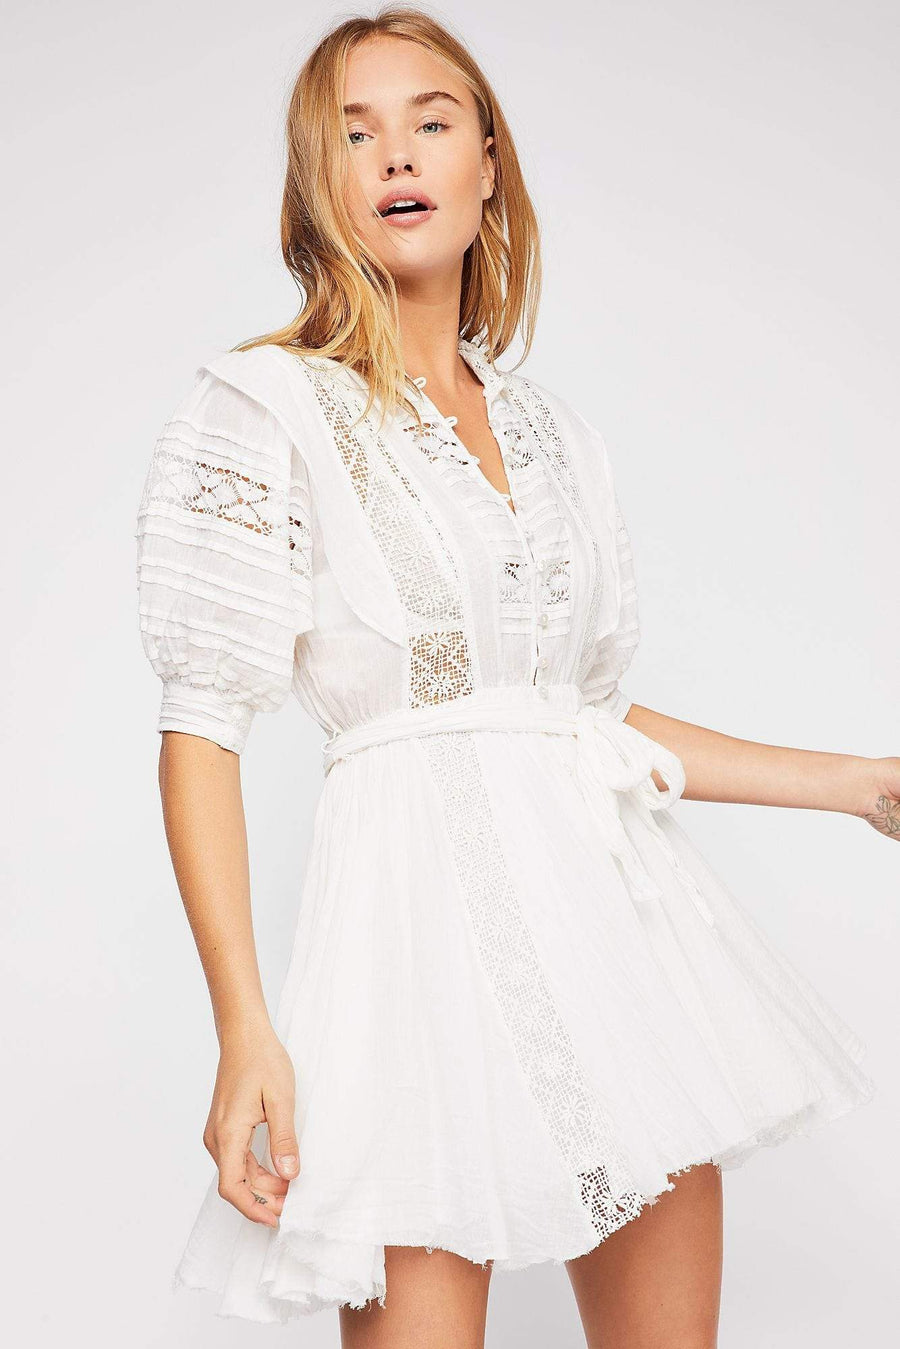 Free People Sydney Dress